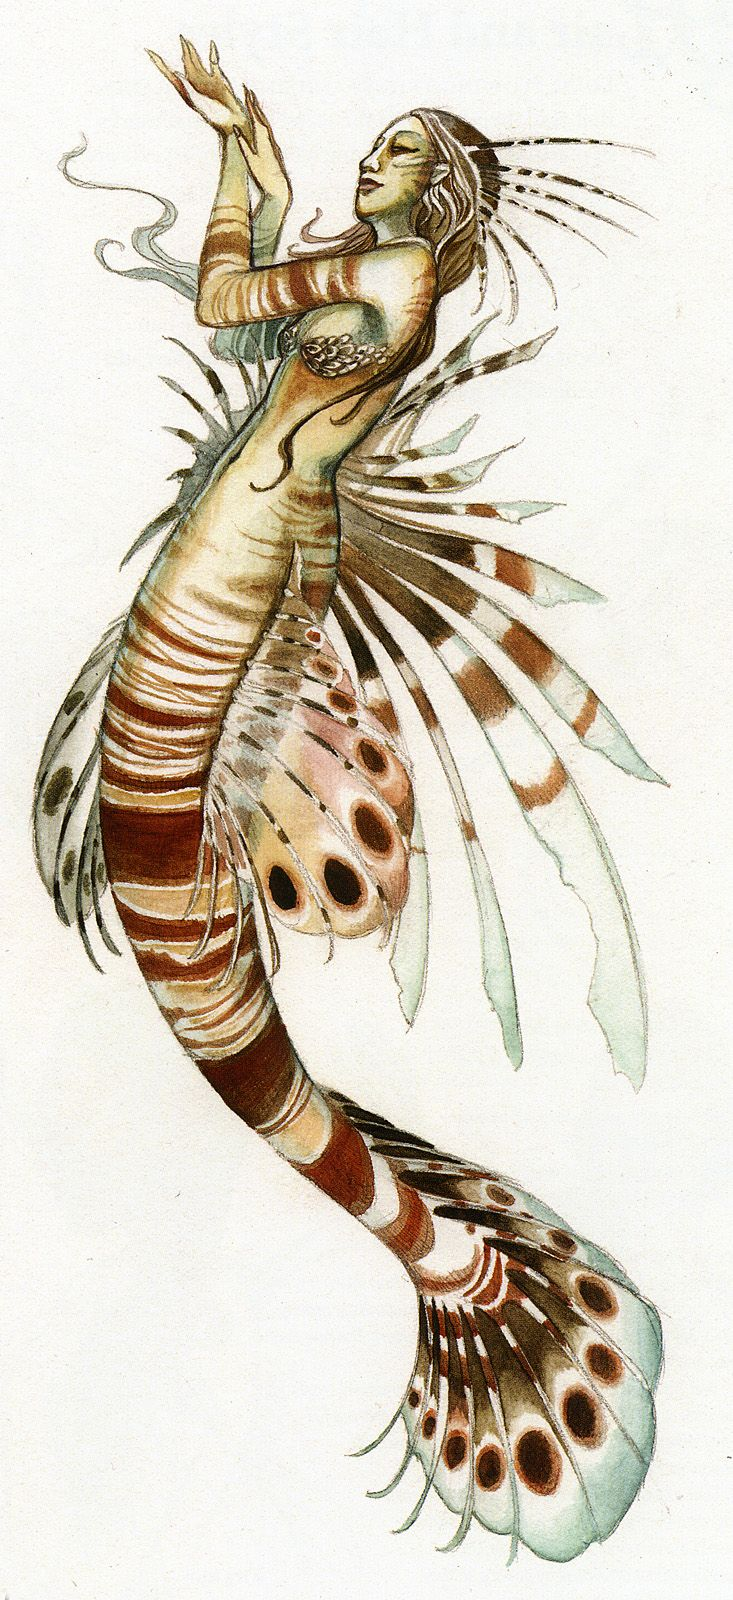 Lionfish Mermaid - woman mixed with a Lionfish